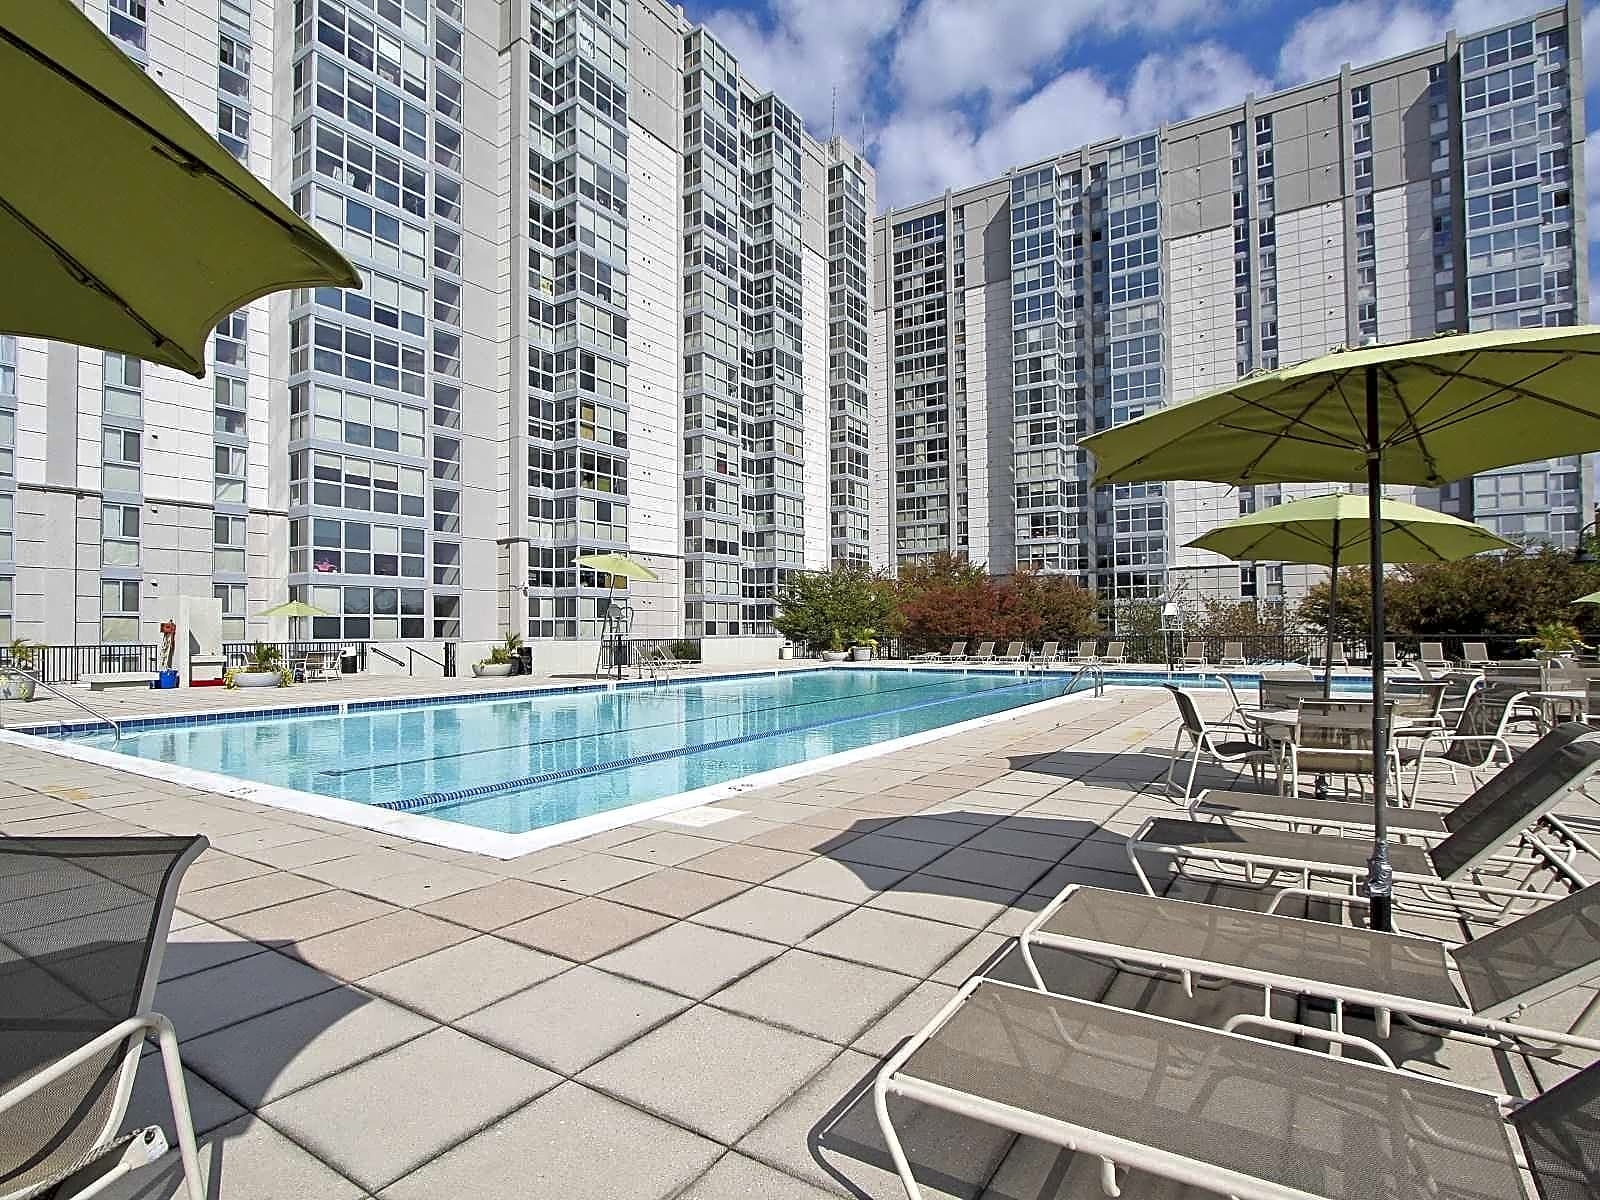 The monterey apartments north bethesda md 20852 for Academie de cuisine bethesda md